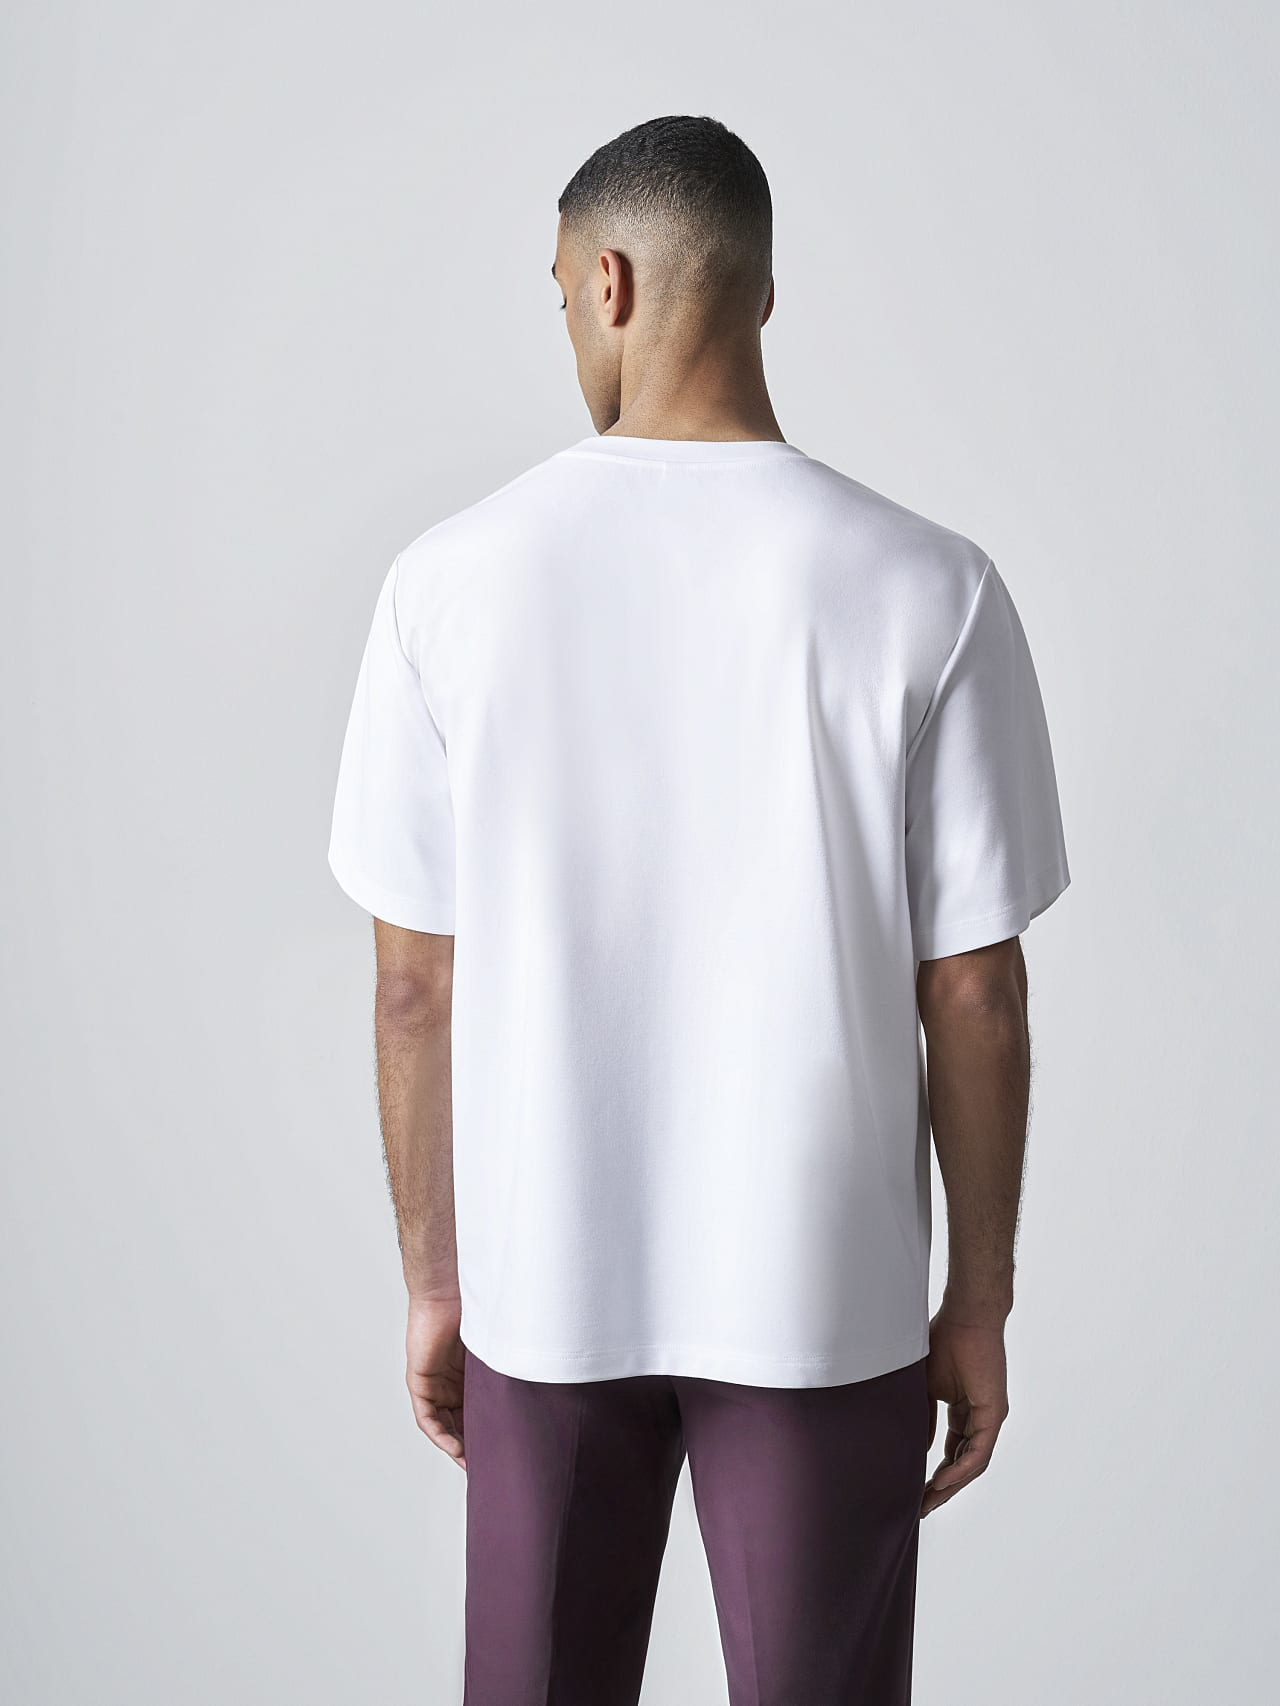 JAHEV V1.Y5.02 Relaxed Logo T-Shirt white Front Main Alpha Tauri